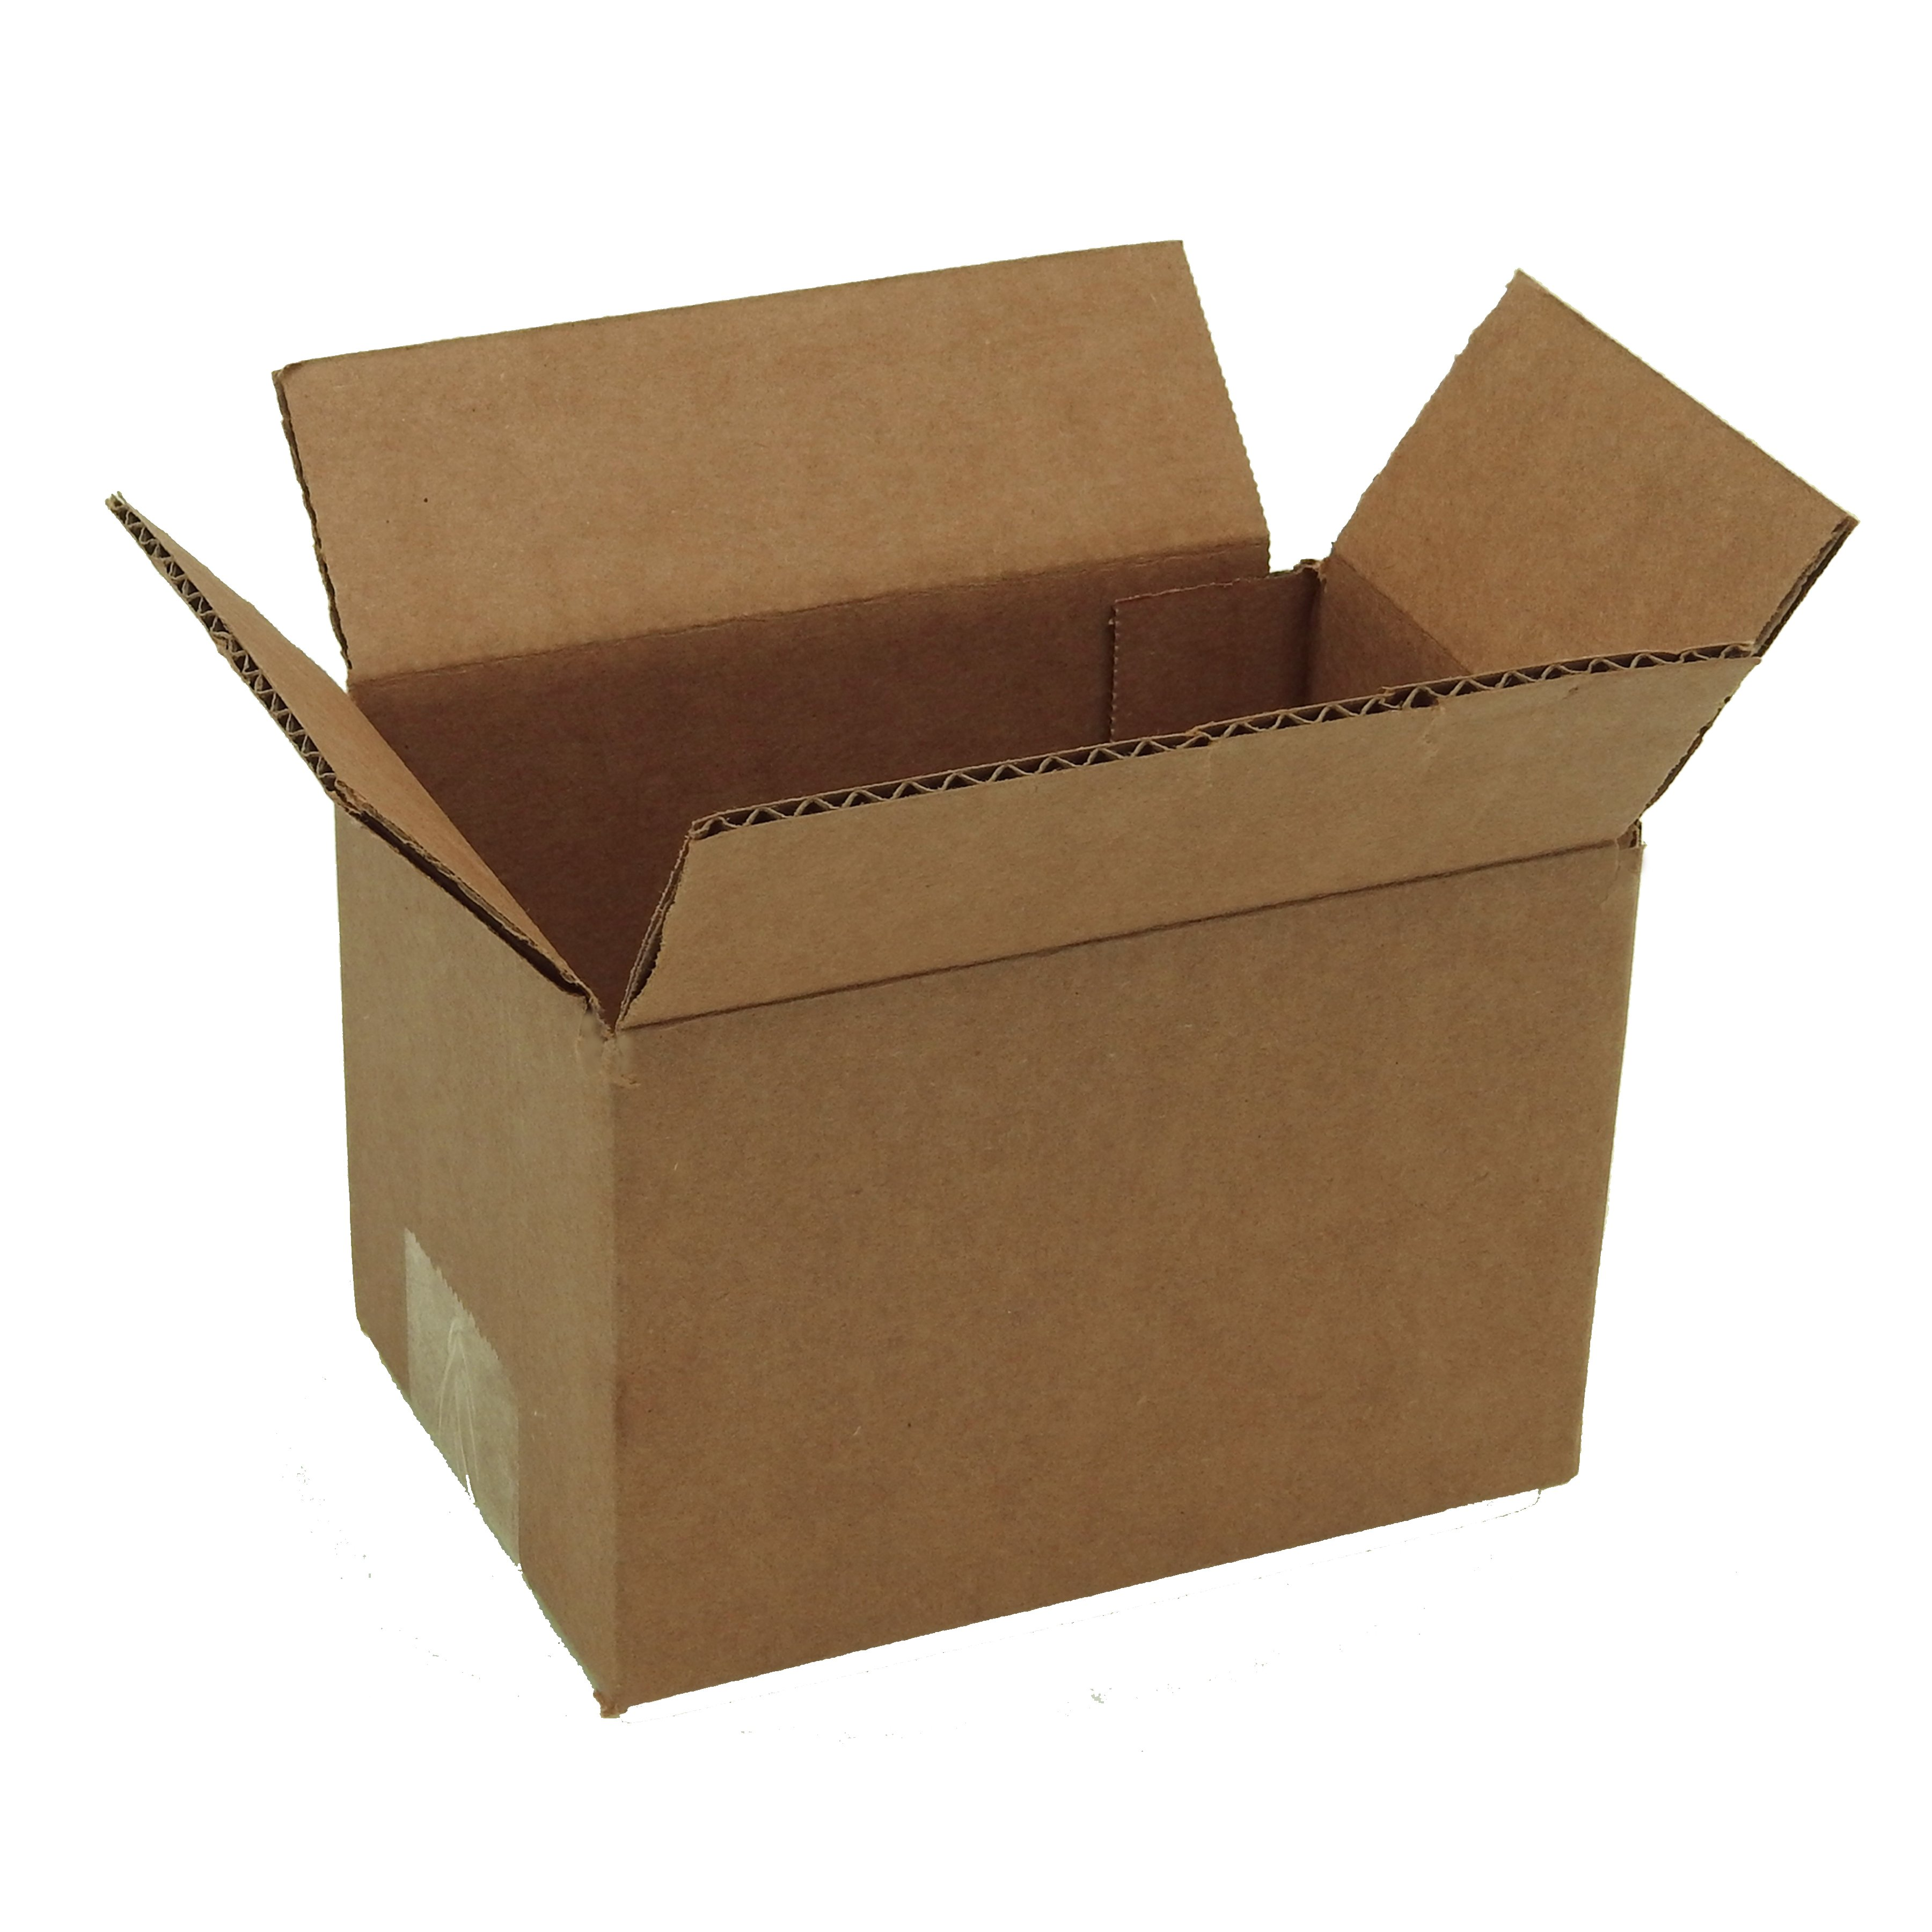 100 6x4x4 Corrugated Cardboard Shipping Mailing Packing Moving Boxes Box Carton